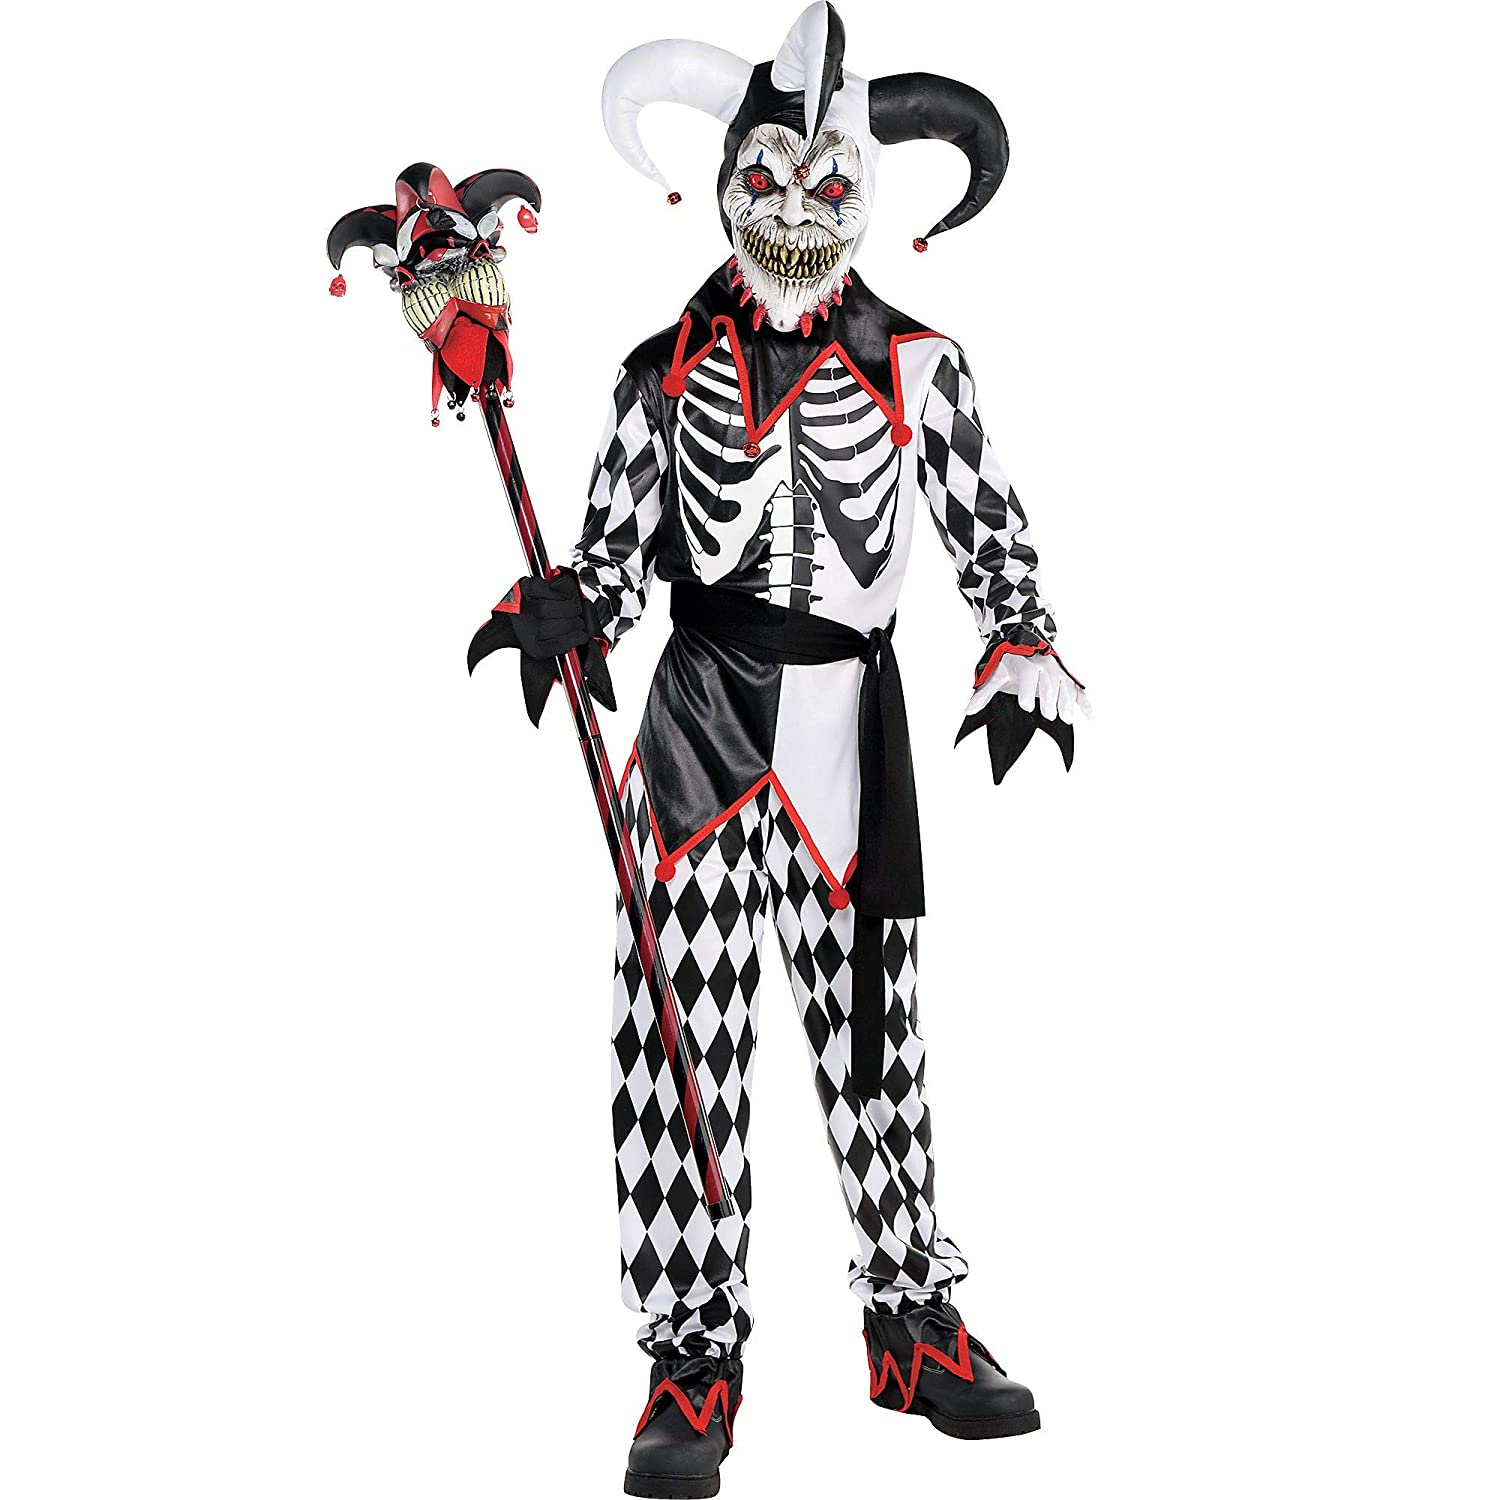 Amazon.com: Amscan Sinister Jester Child Clown Costume: Toys ...